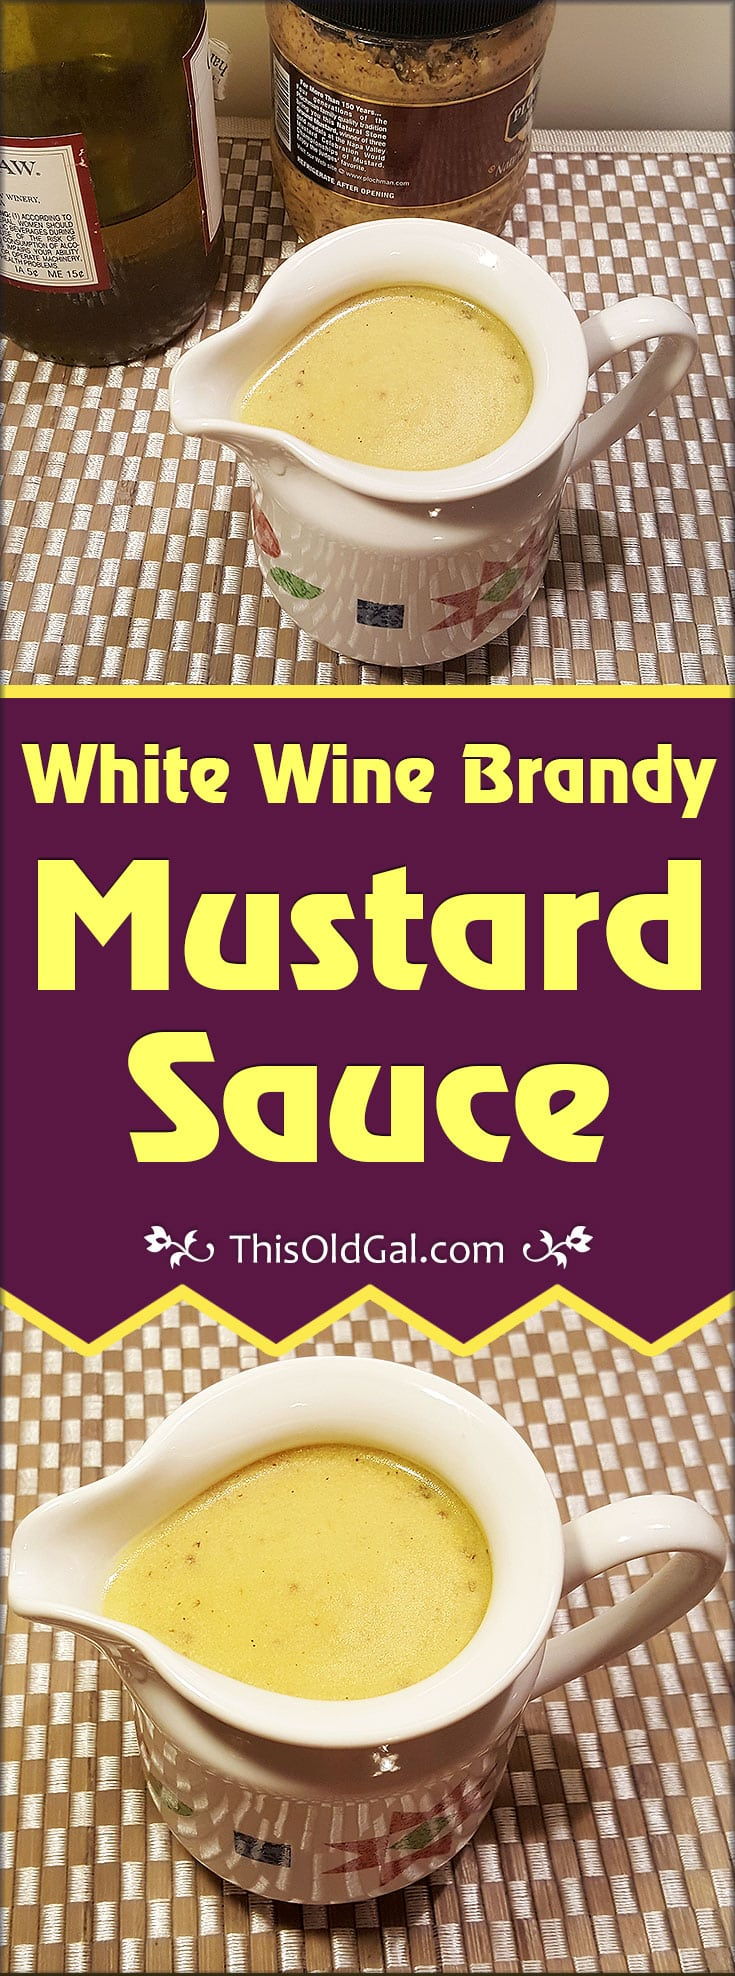 White Wine Brandy Mustard Sauce